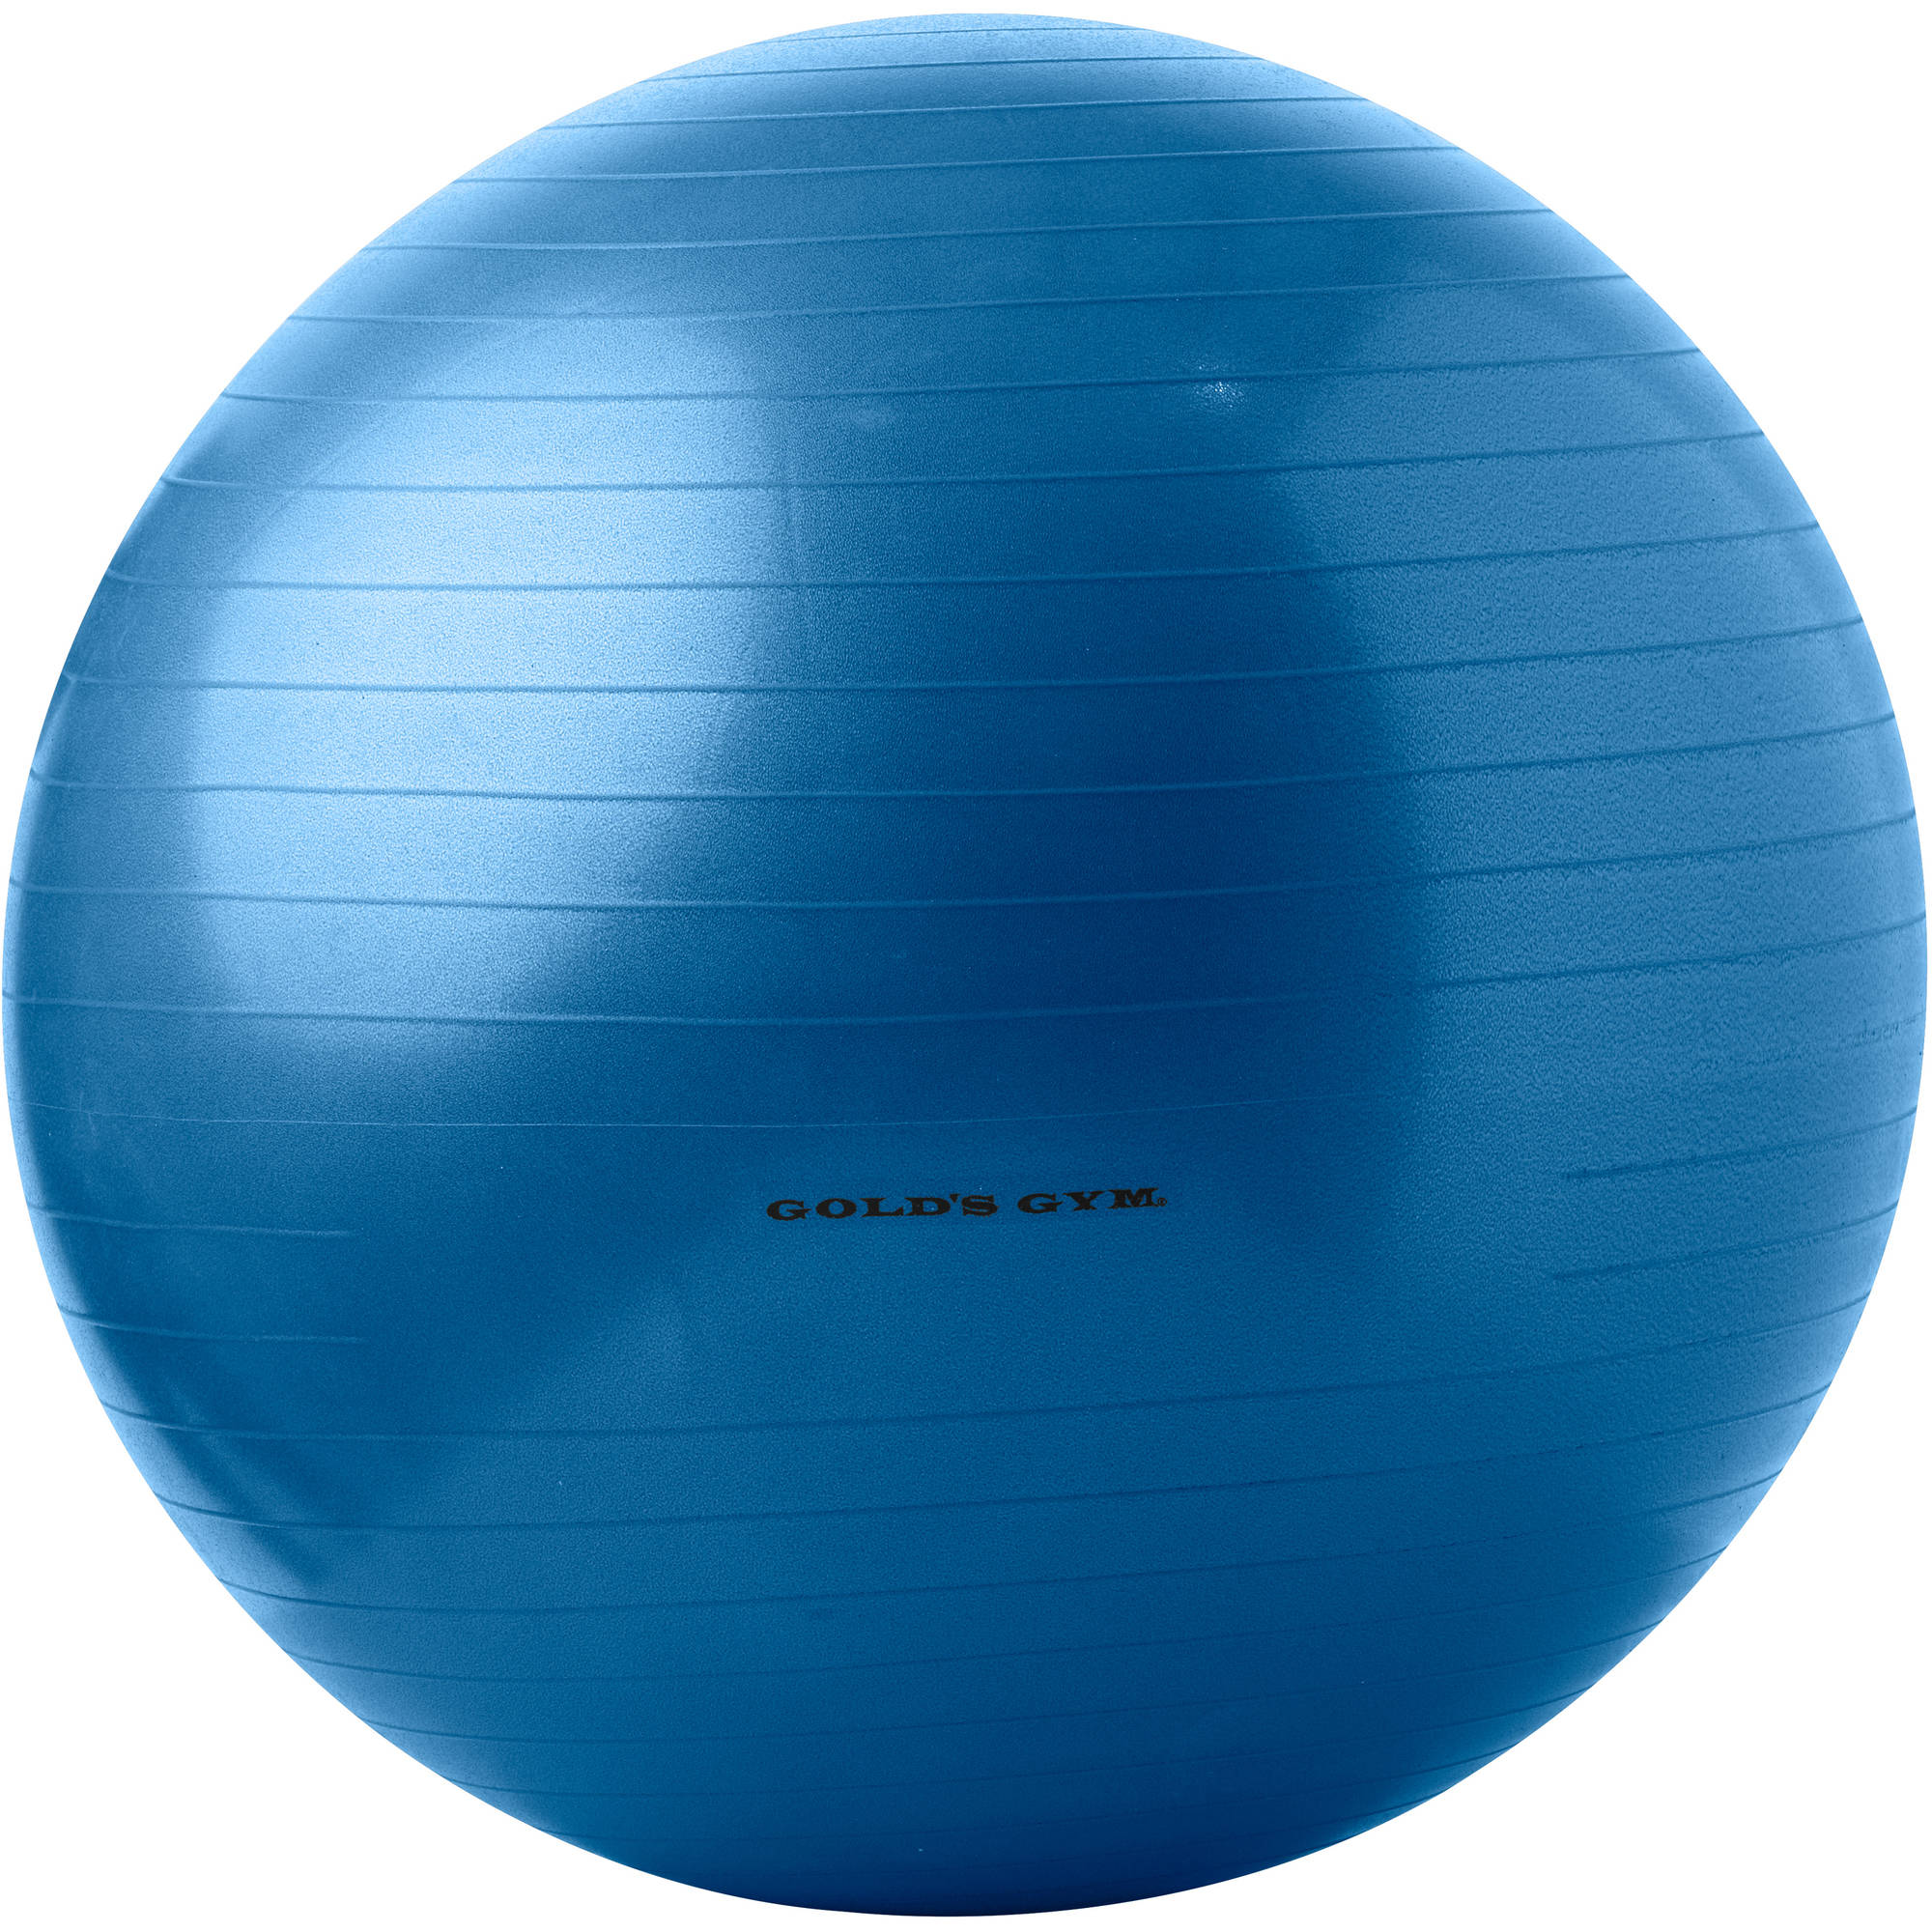 Gold's Gym 65cm Anti-Burst Body Ball